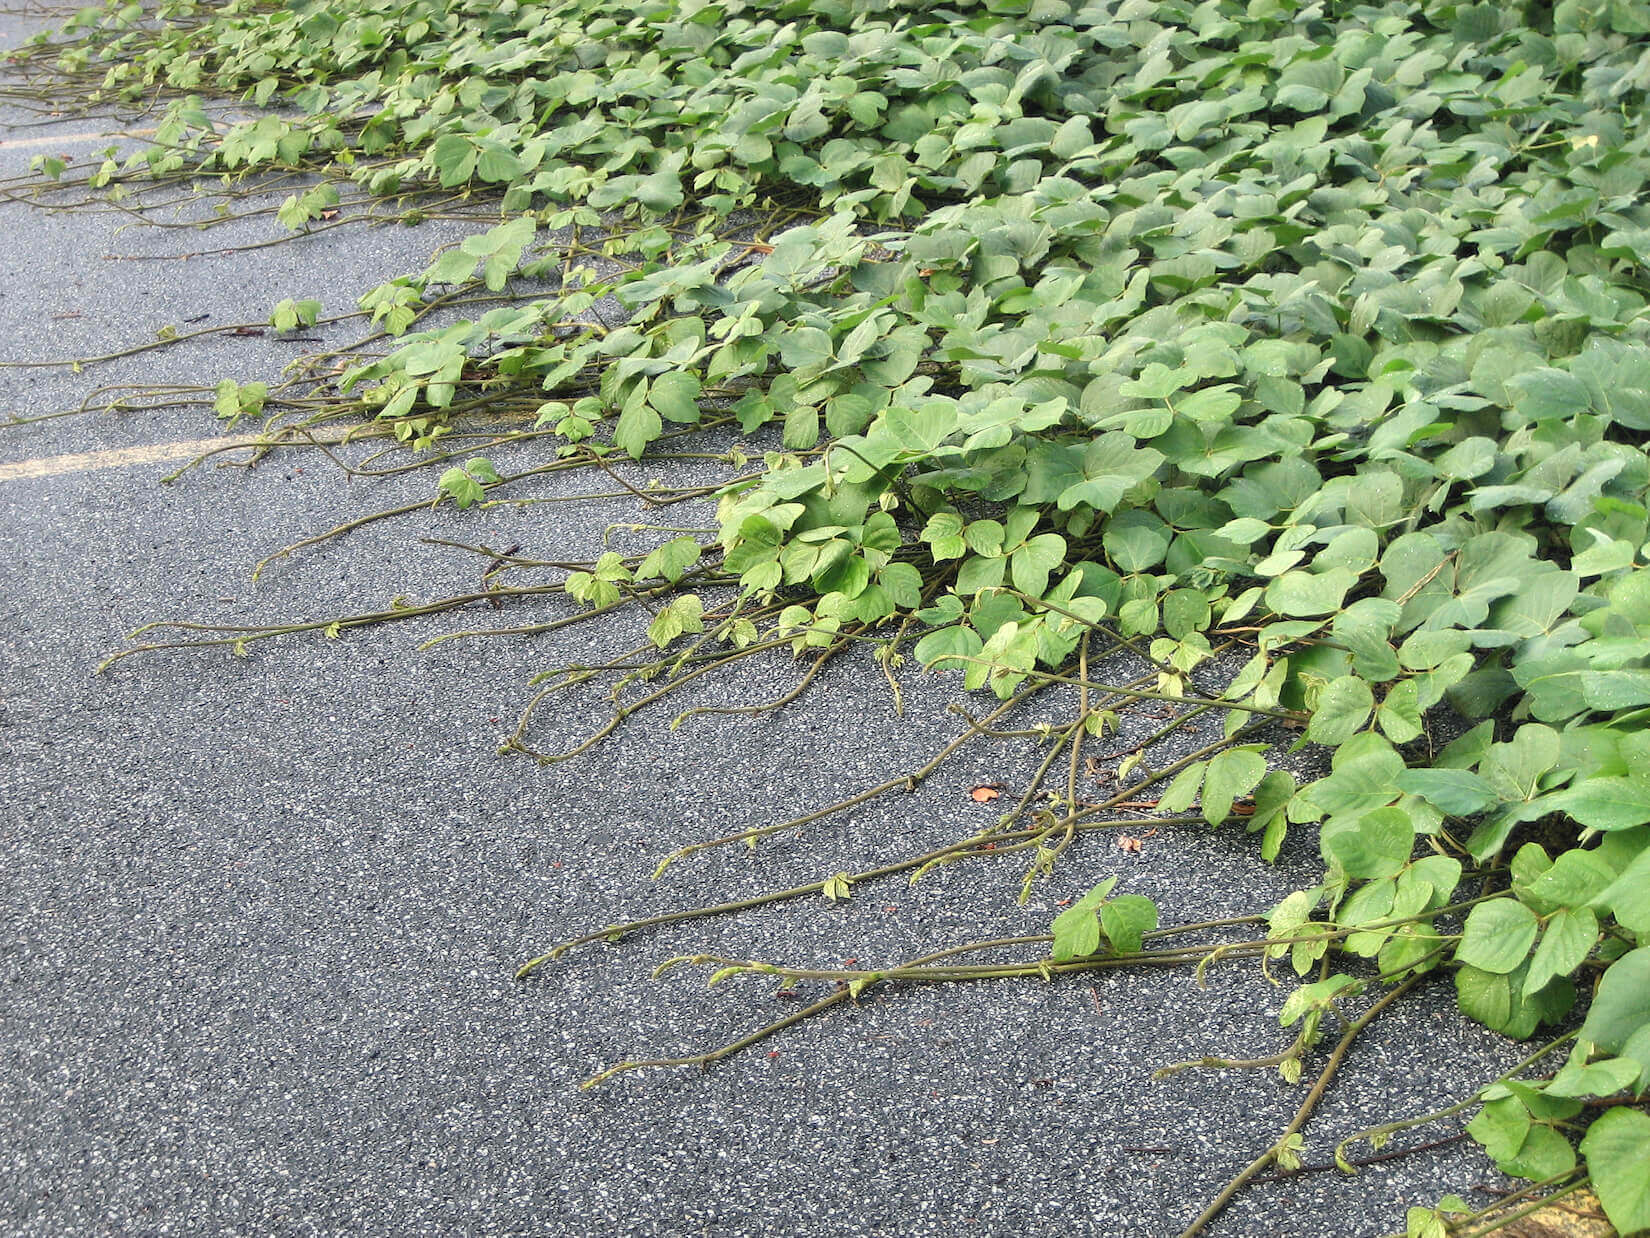 Kudzu attack over parking lot